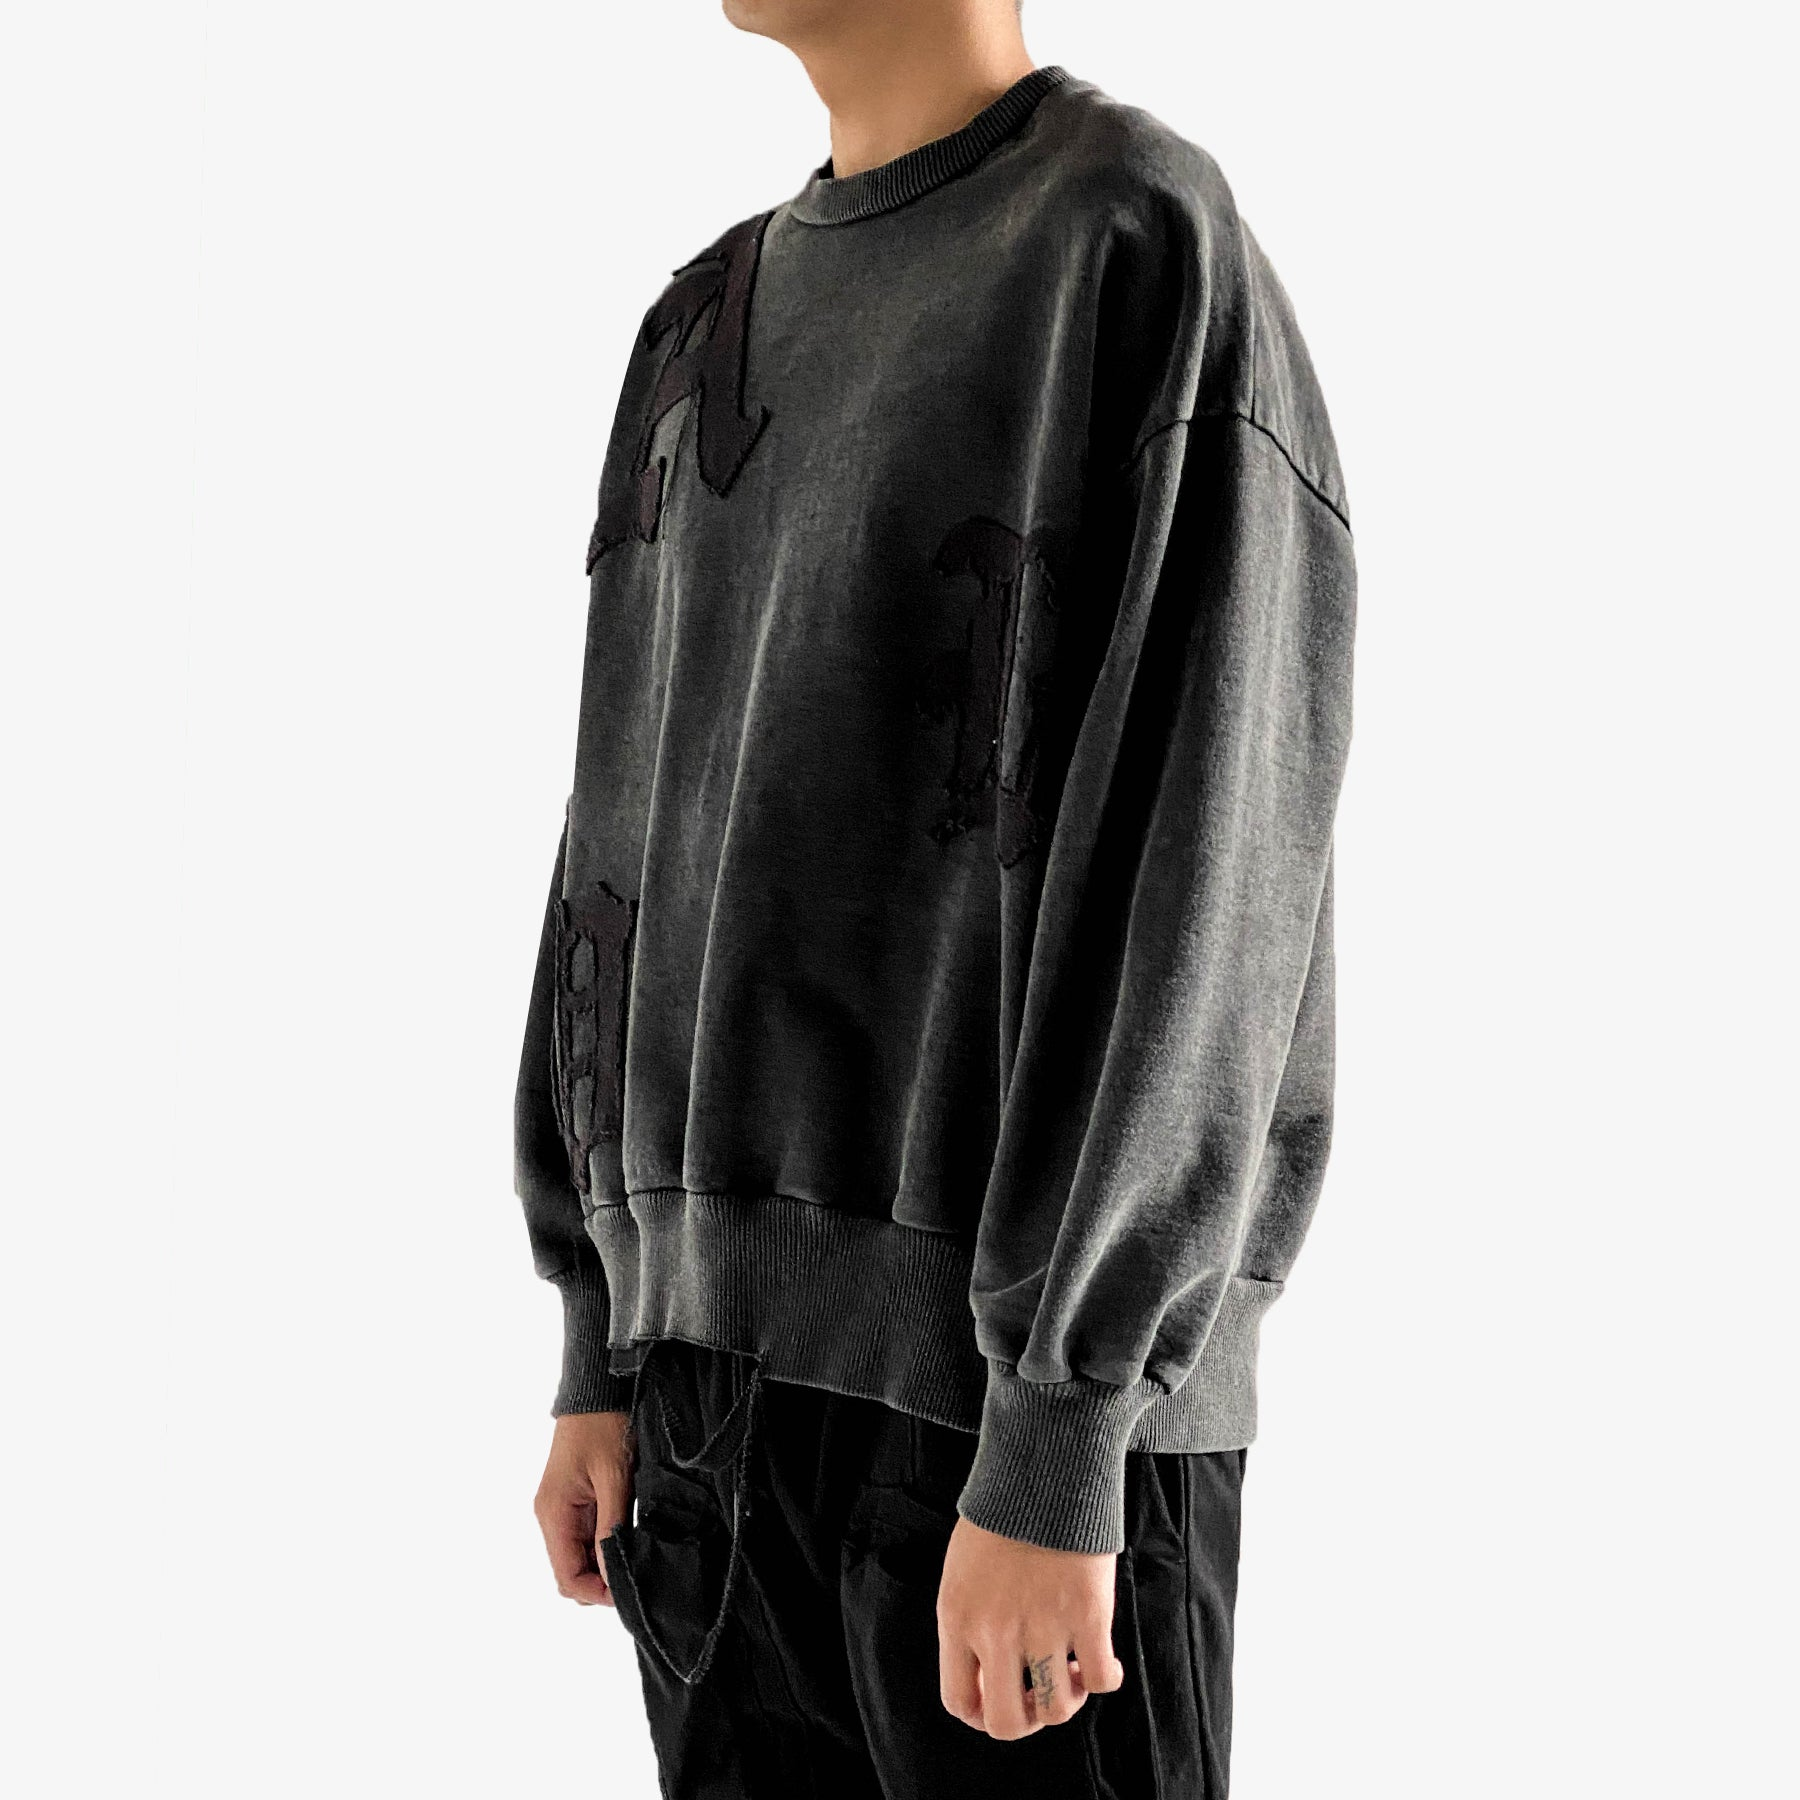 OLD ENGLISH ANTHRACITE CREWNECK